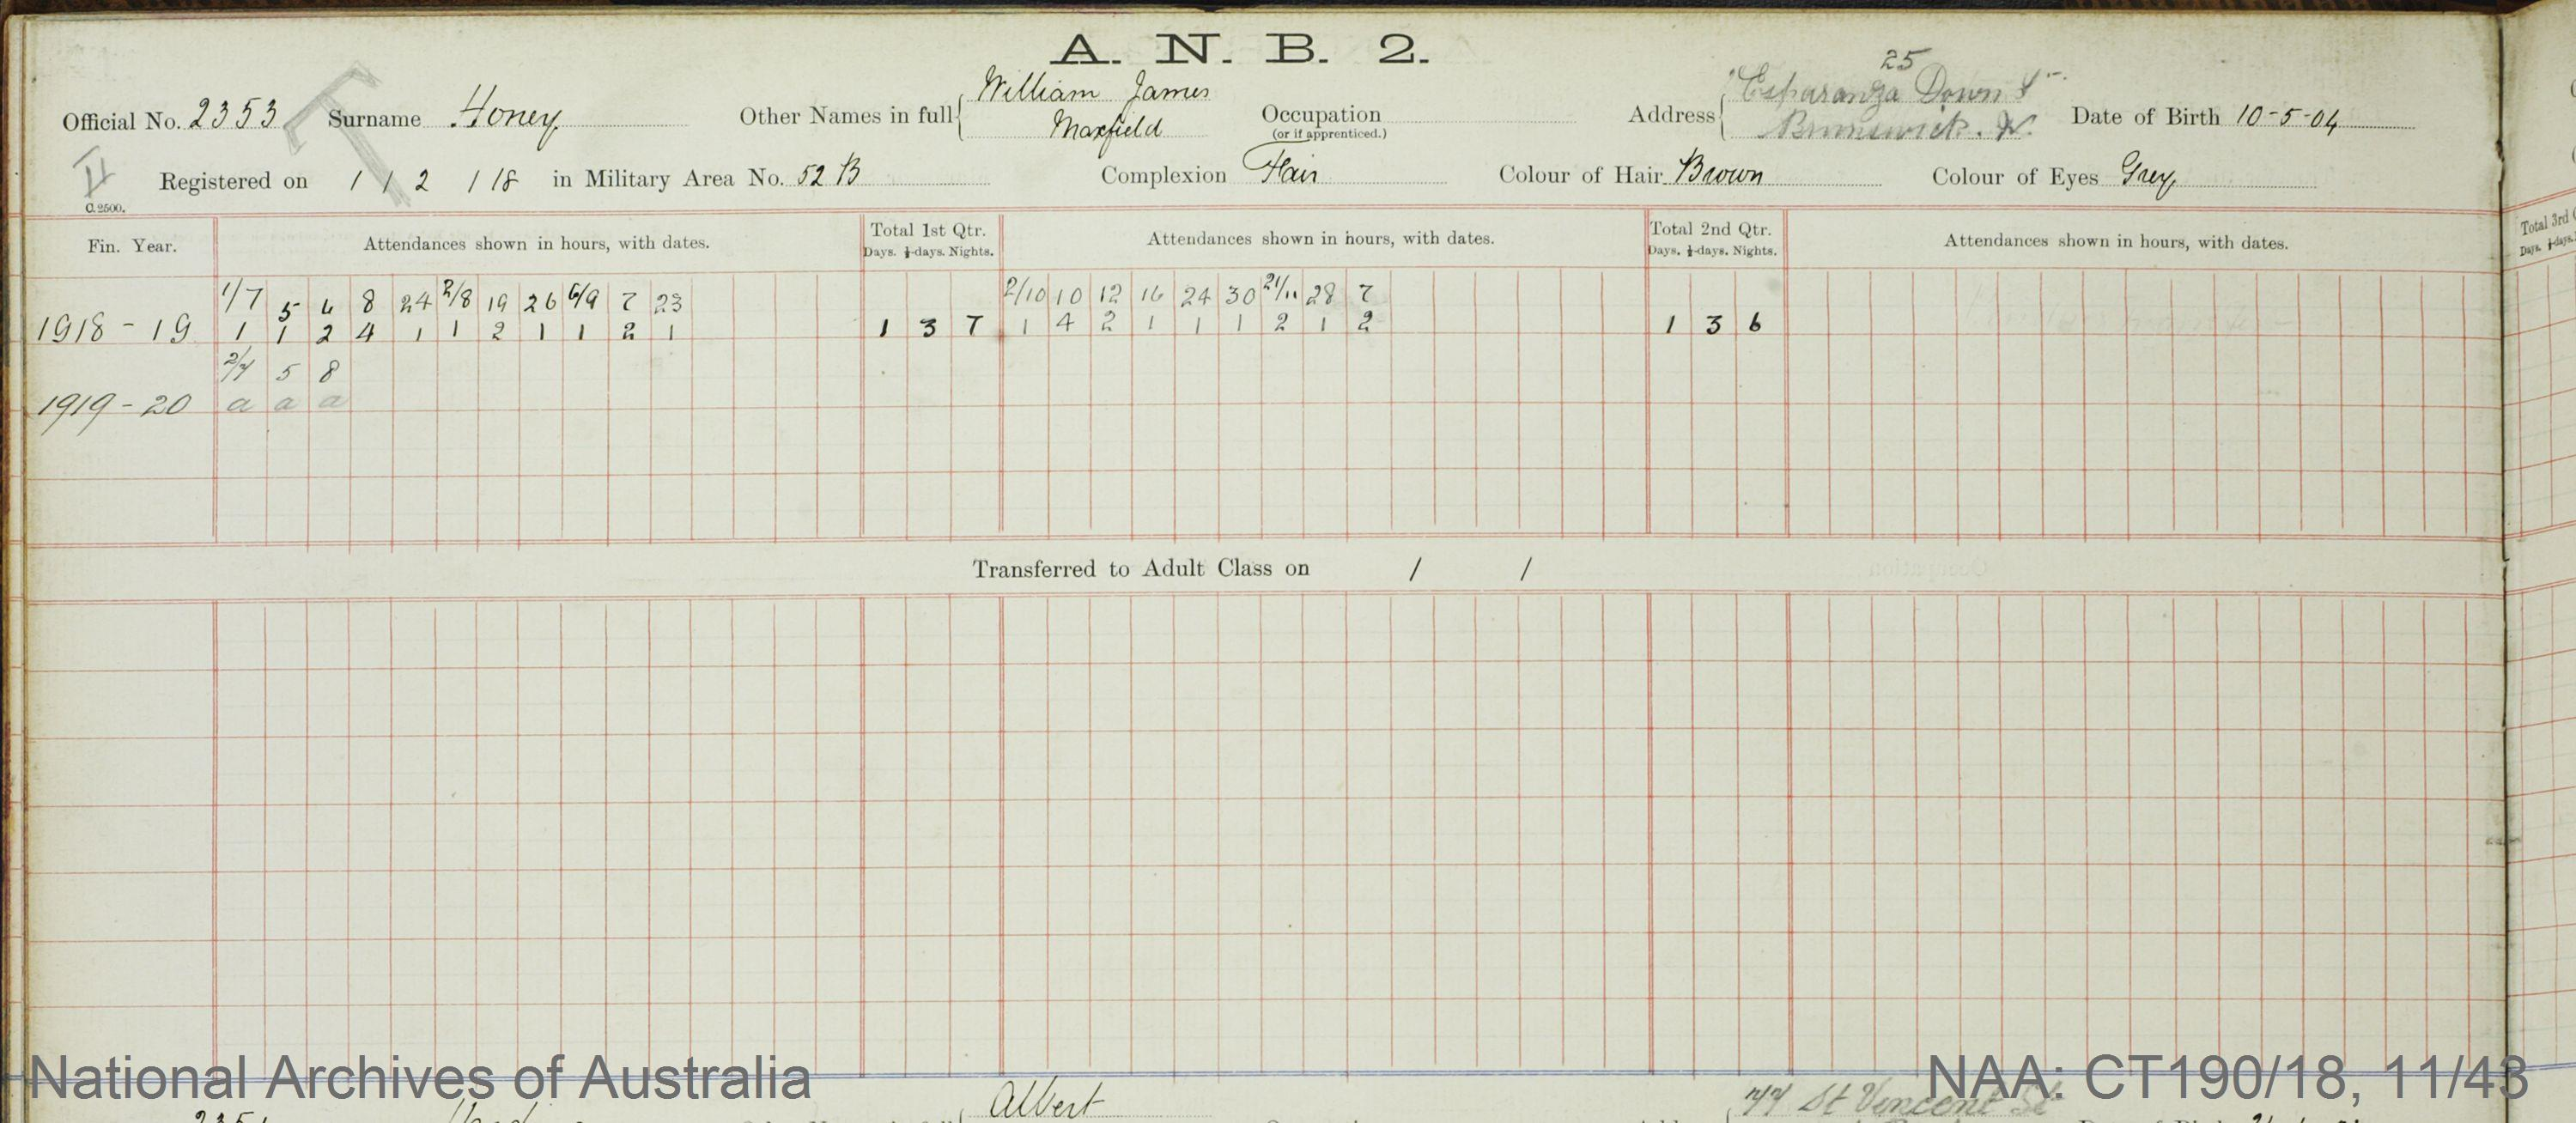 SURNAME - HONEY;  GIVEN NAME(S) - William James Maxfield;  OFFICIAL NUMBER - 2353;  DATE OF BIRTH - 10 May 1904;  PLACE OF BIRTH - [Unknown];  NEXT OF KIN - [Unknown] ;  SERVICE/STATION - Port Melbourne;  REGISTRATION DATE - 1 February 1918